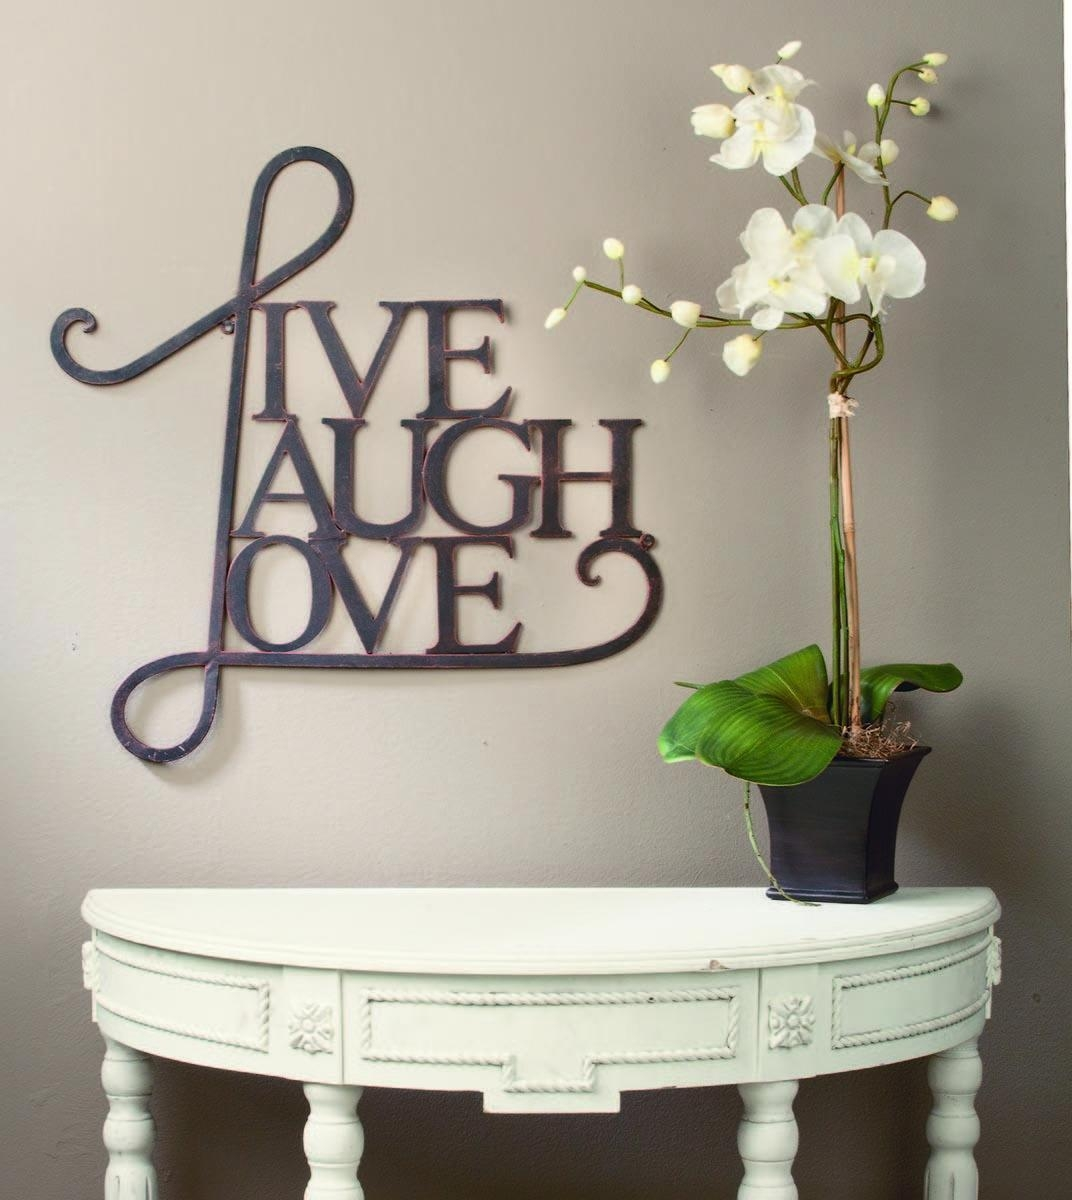 8 Best Images Of Love Wall Decor U2013 Heart Shaped Frames, Live Laugh For Live